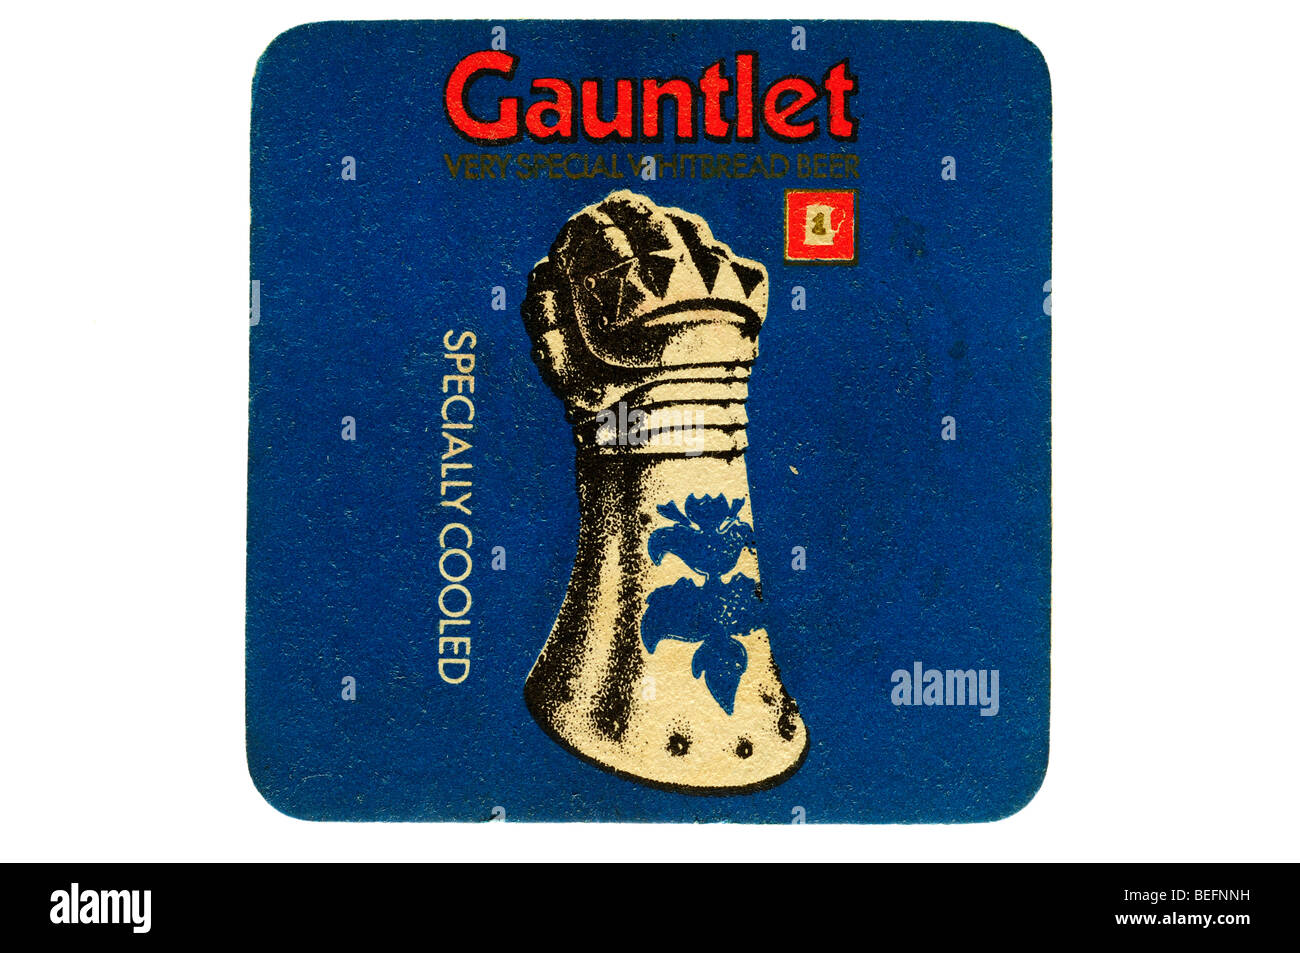 gauntlet very special whitbread beer specially cooled Stock Photo